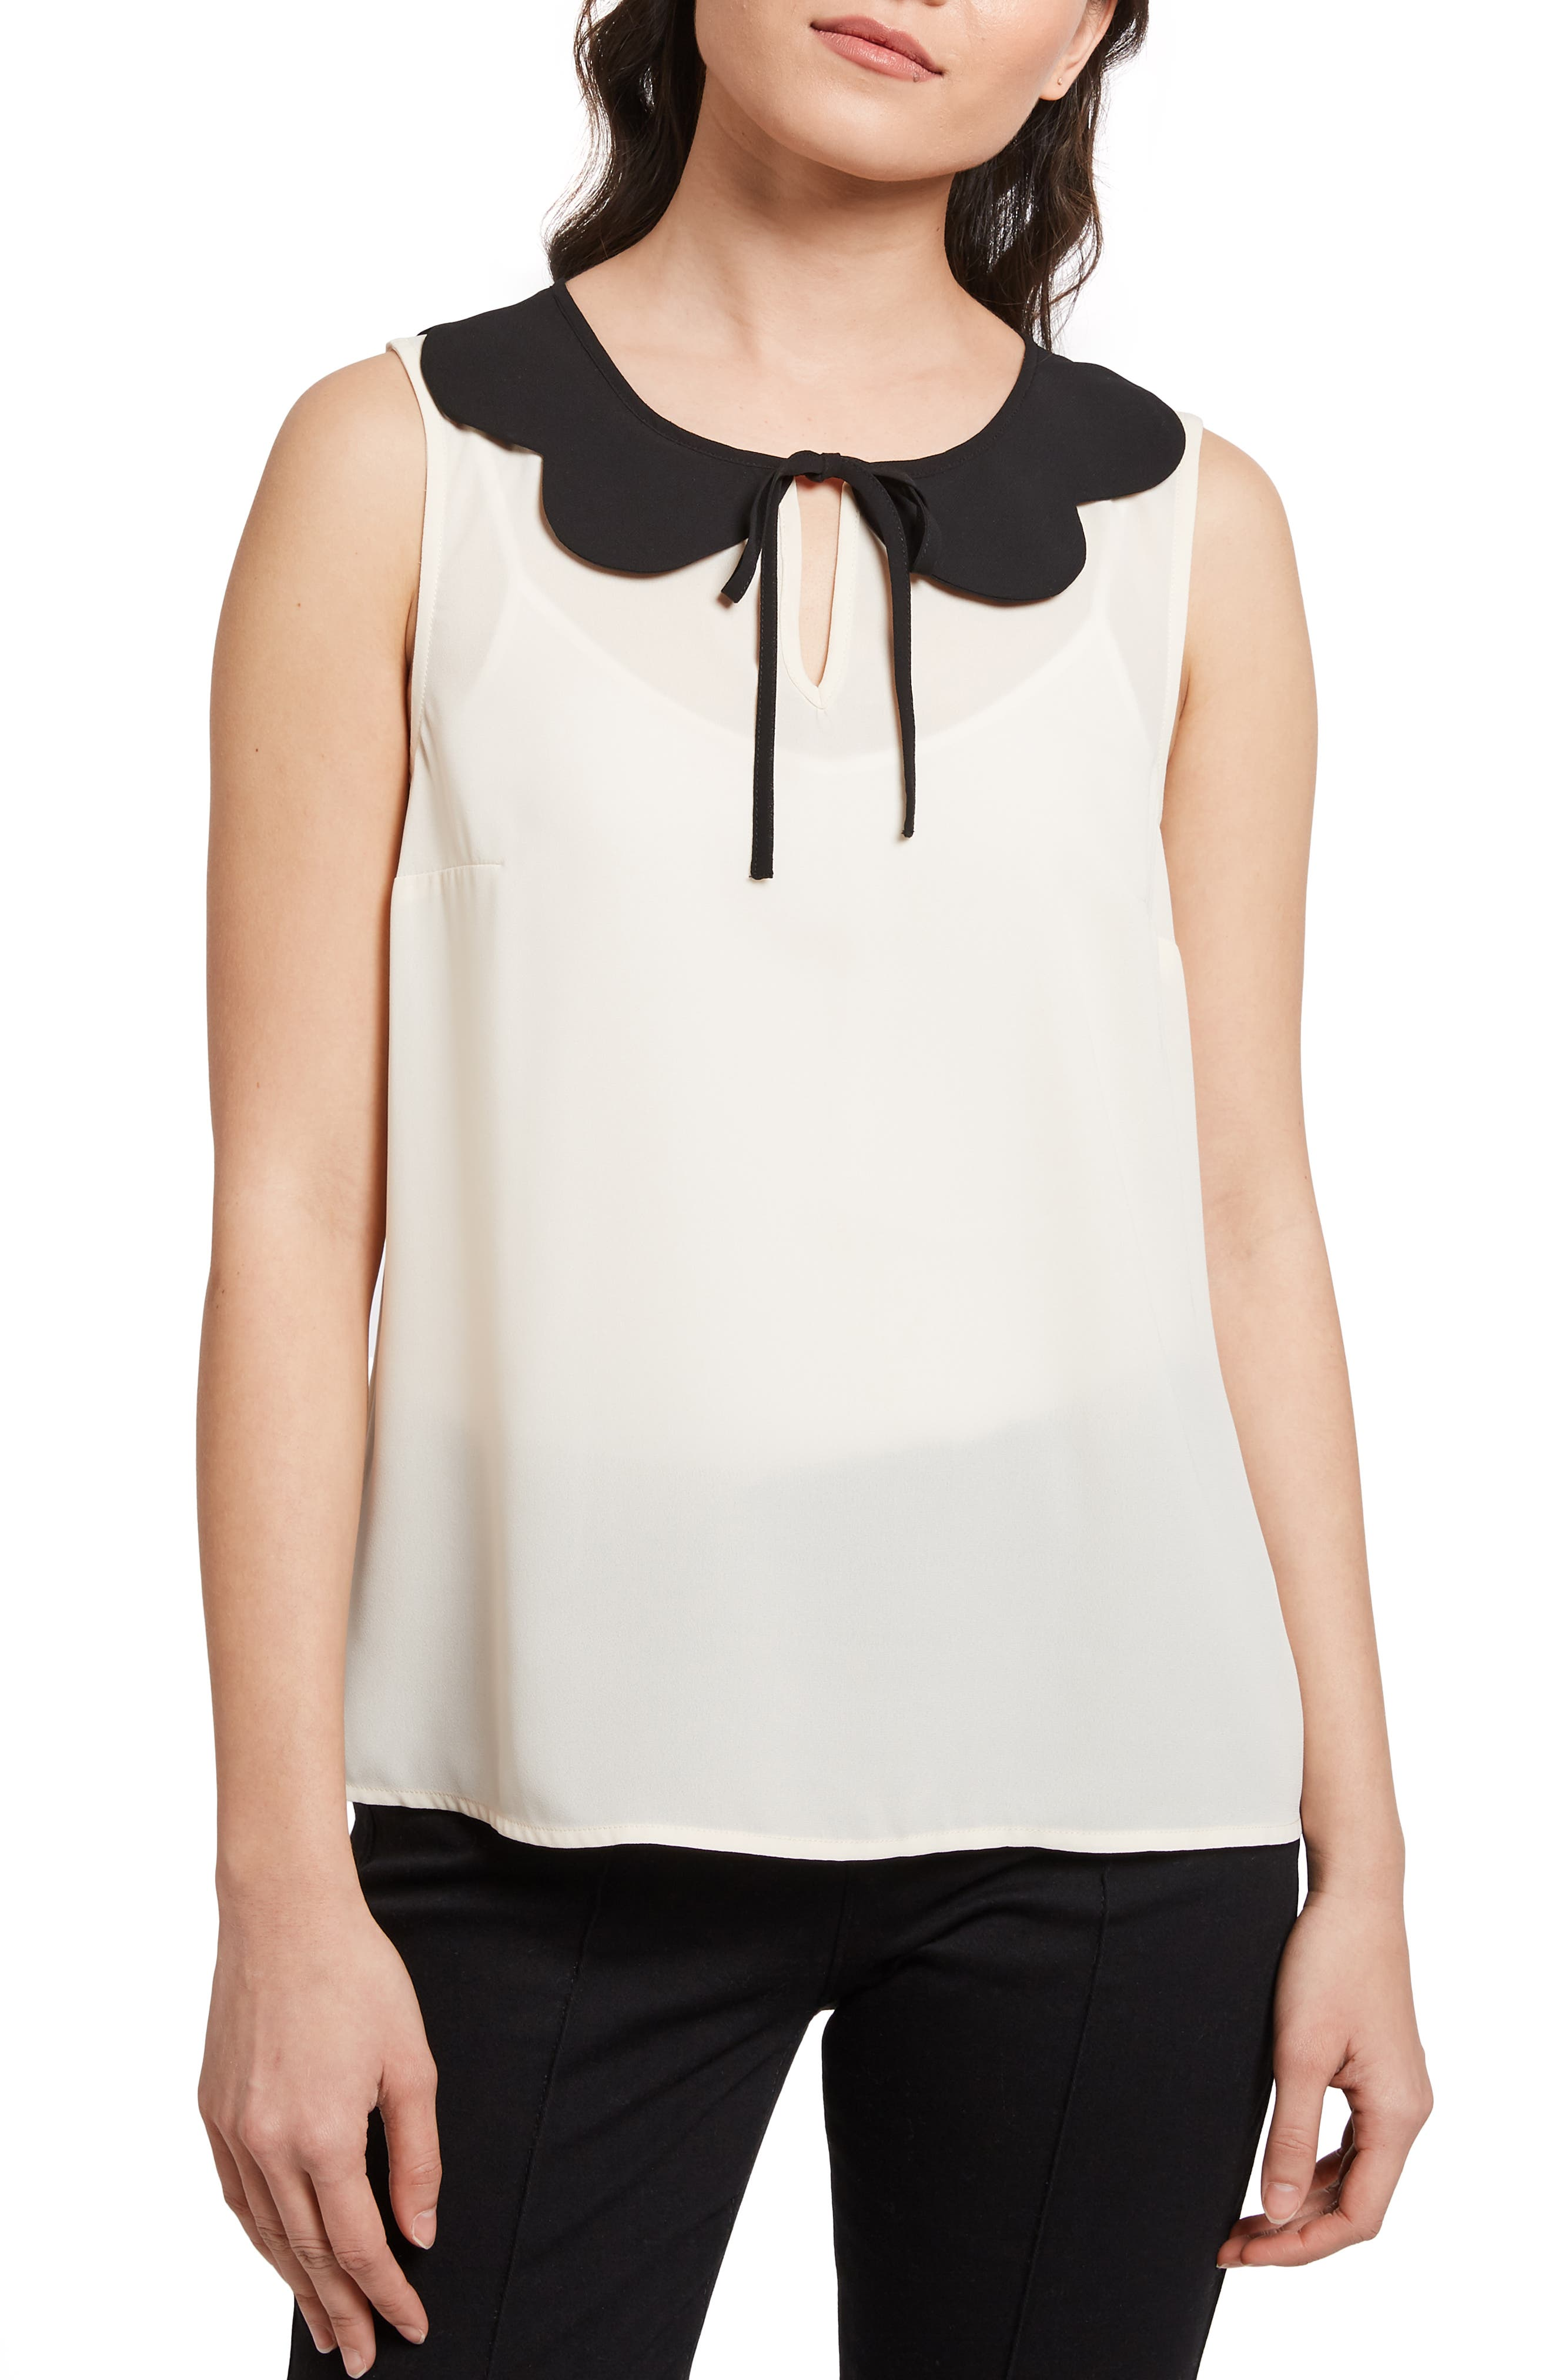 Vintage & Retro Shirts, Halter Tops, Blouses Womens Modcloth Petal Collar Sleeveless Top $45.00 AT vintagedancer.com